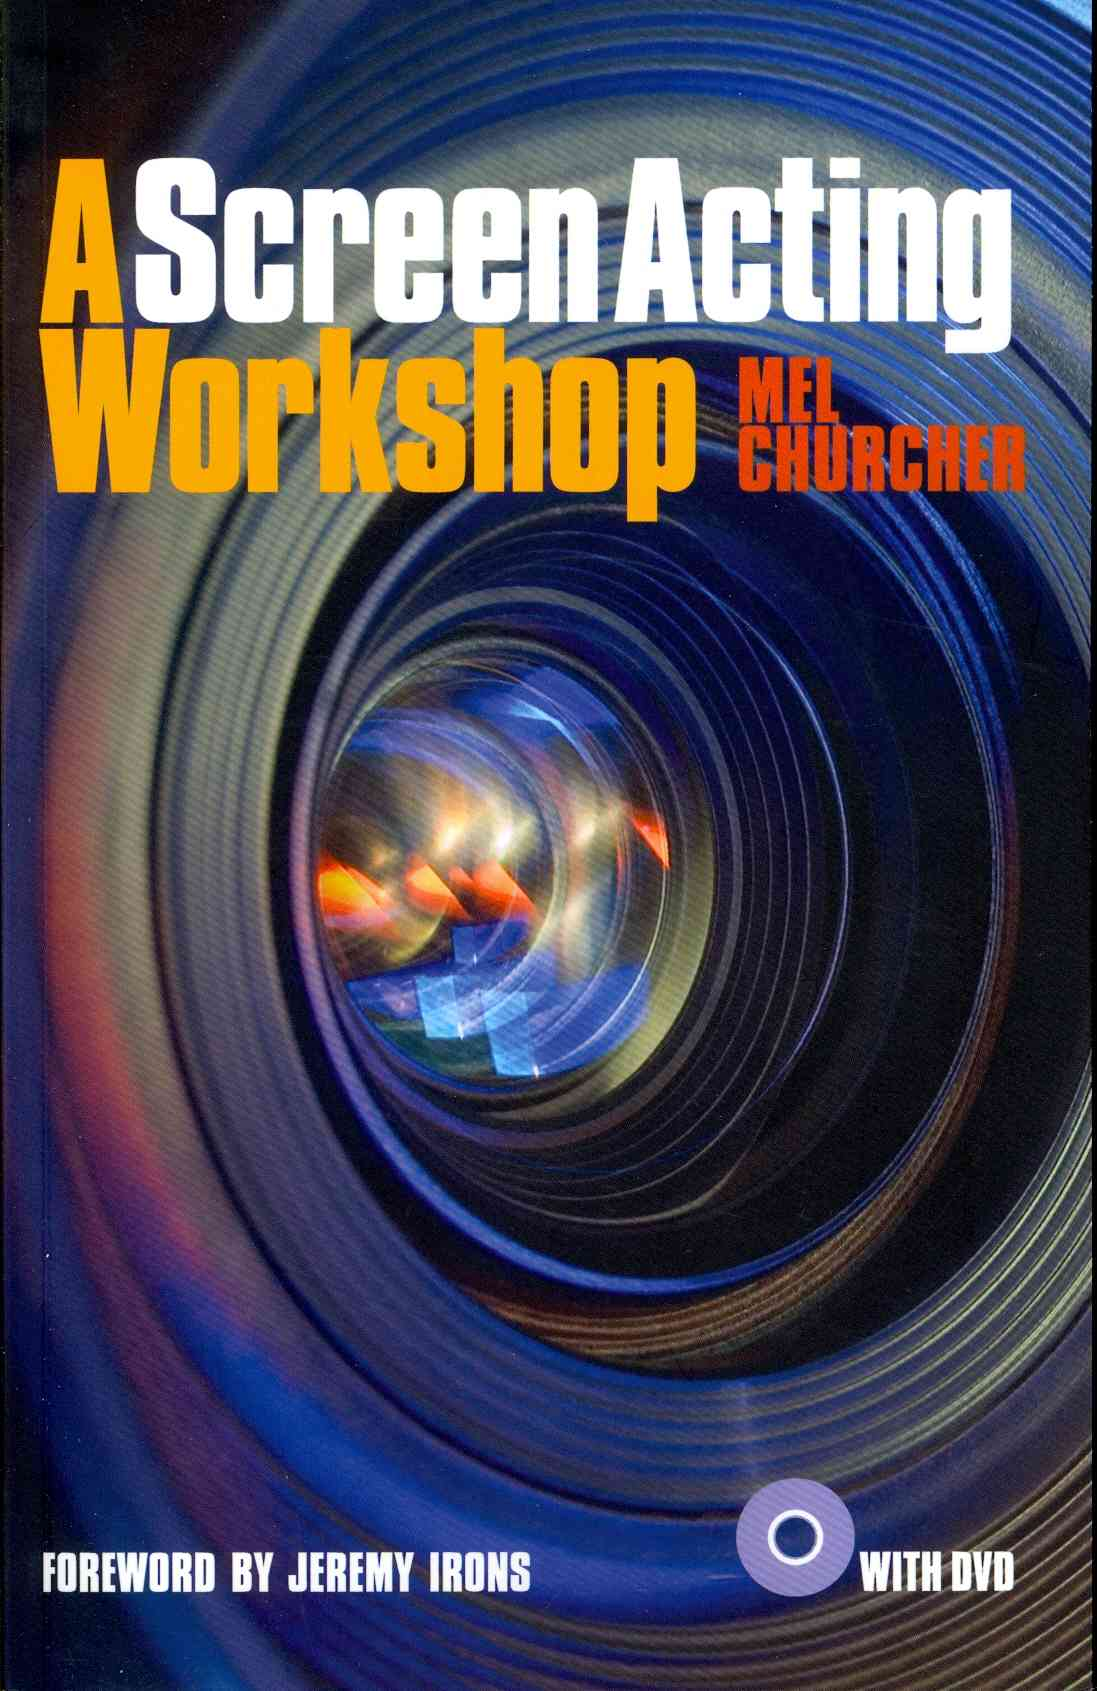 A Screen Acting Workshop By Churcher, Mel/ Irons, Jeremy (FRW)